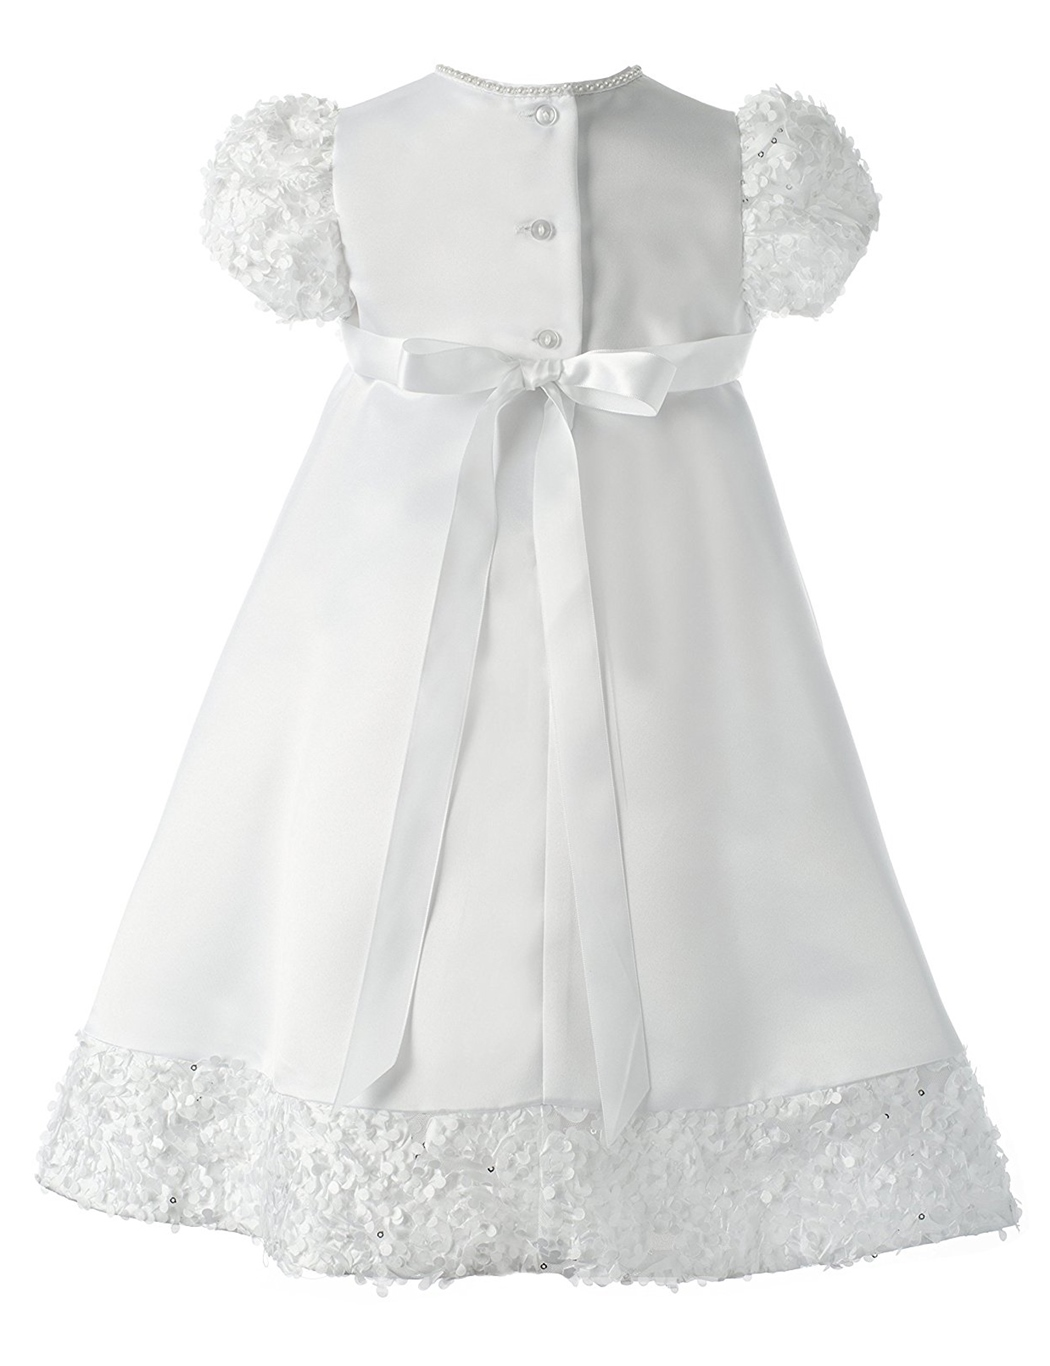 Ericdress Appliques Beading Scoop Baby Girl Christening Baptism Dress